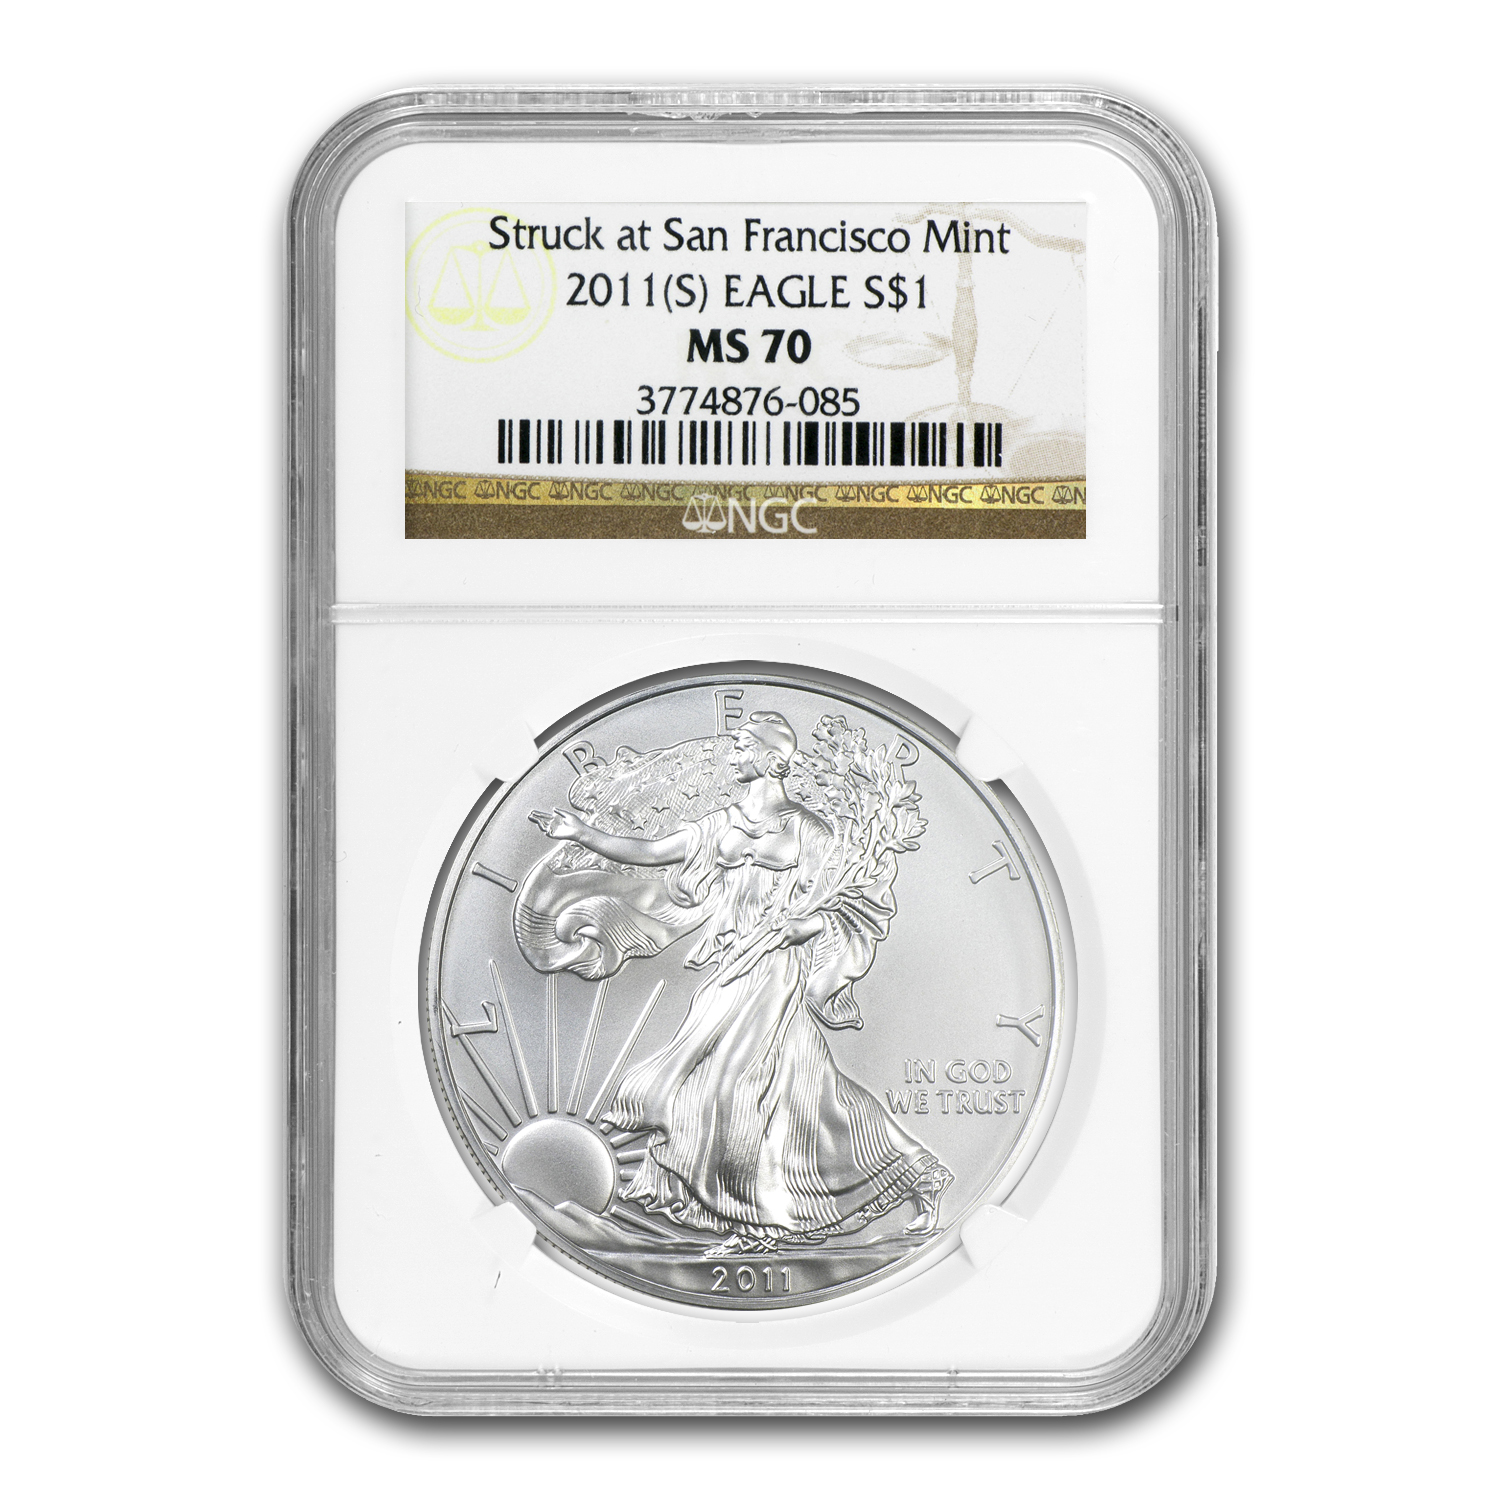 2011 (S) Silver Eagle - MS-70 NGC - San Francisco Label